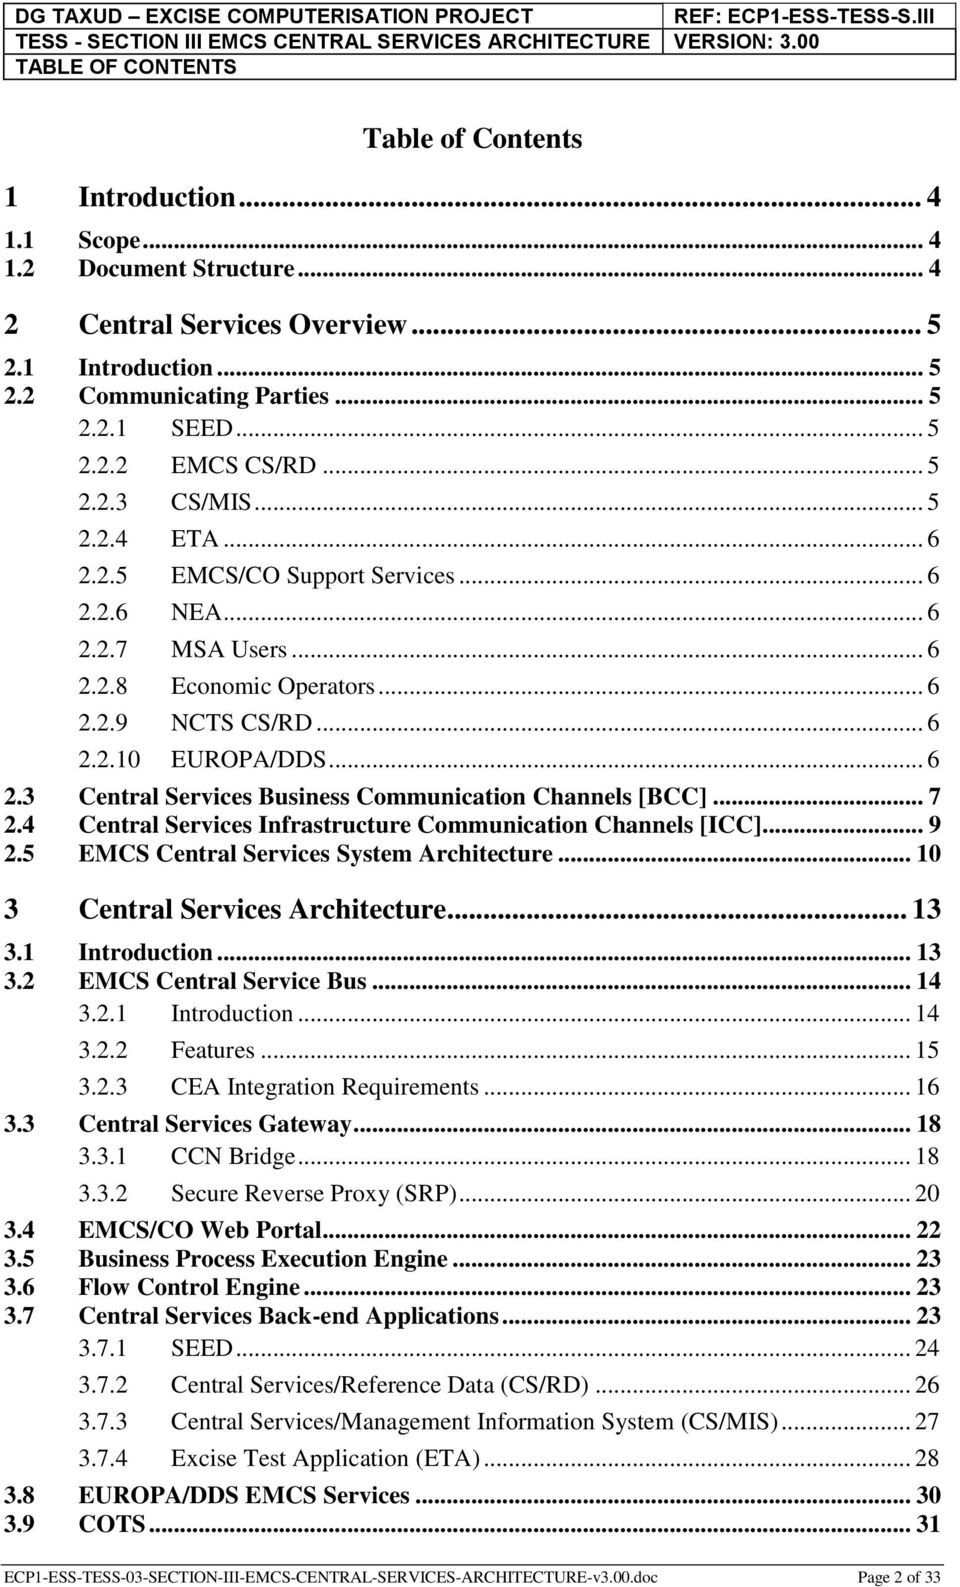 .. 6 2.3 Central Services Business Communication Channels [BCC]... 7 2.4 Central Services Infrastructure Communication Channels [ICC]... 9 2.5 EMCS Central Services System Architecture.